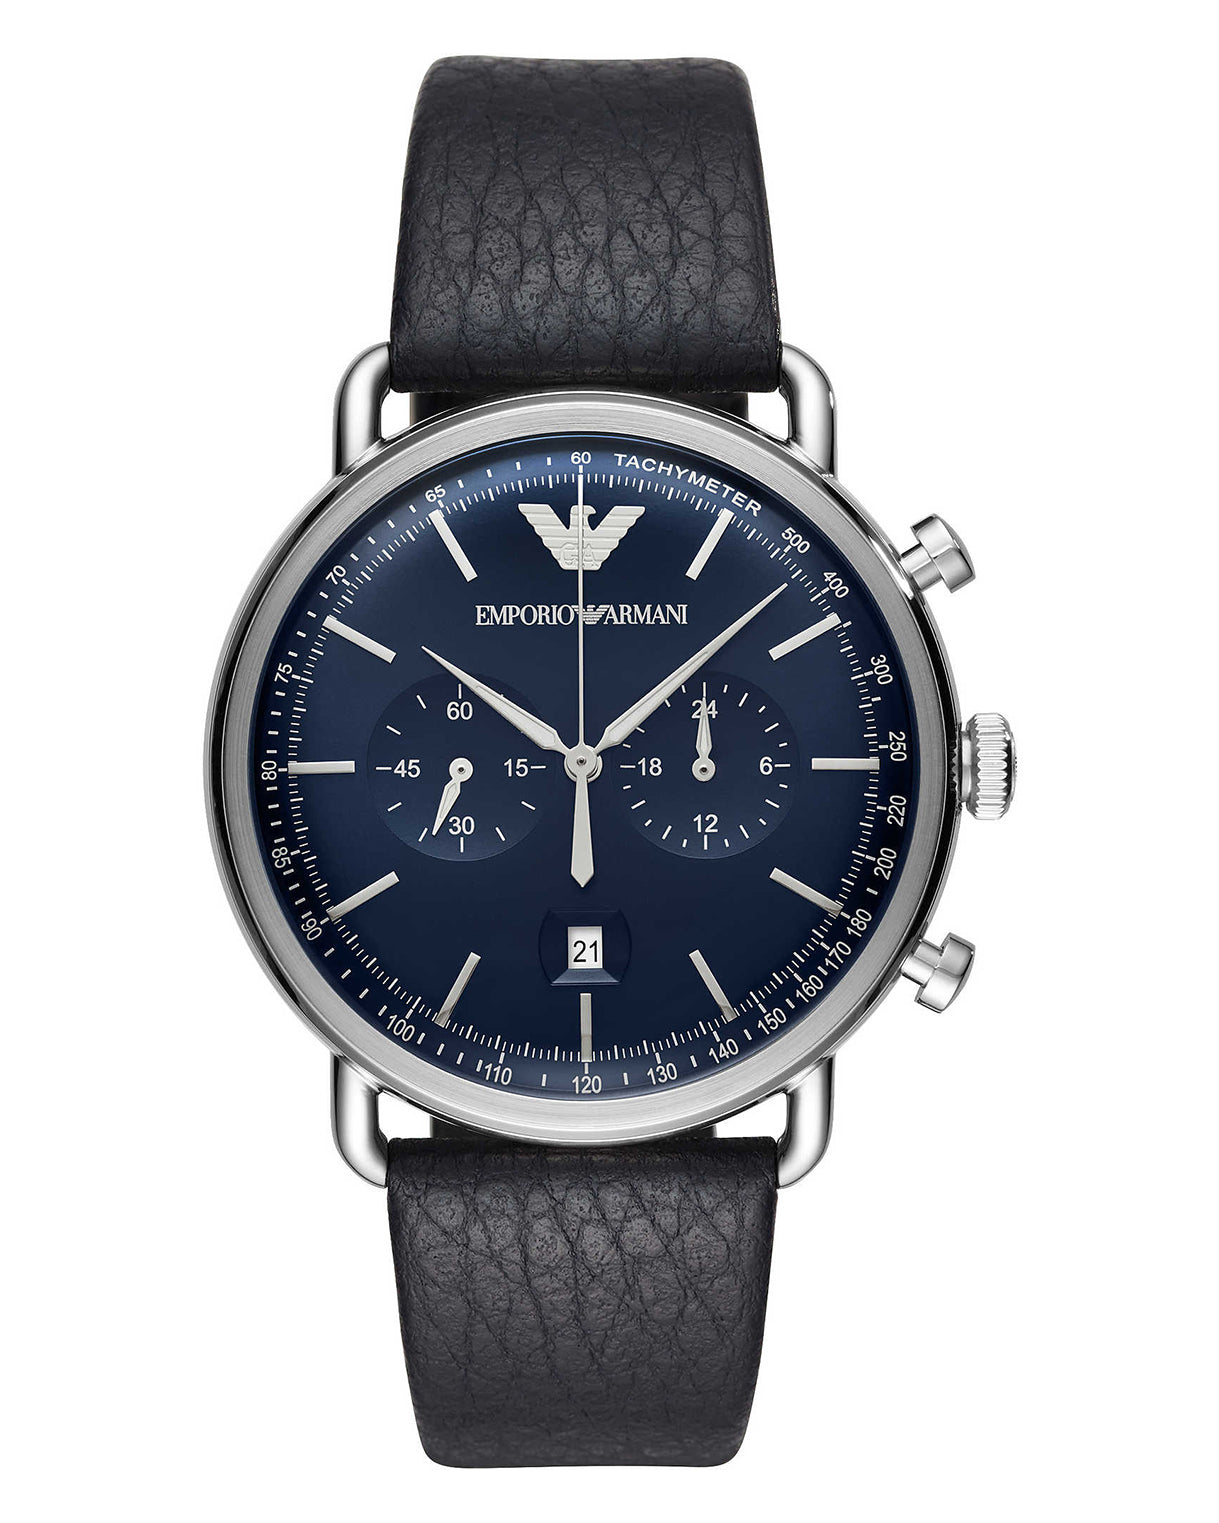 Emporio Armani Men's Navy Leather Strap Chronograph Watch